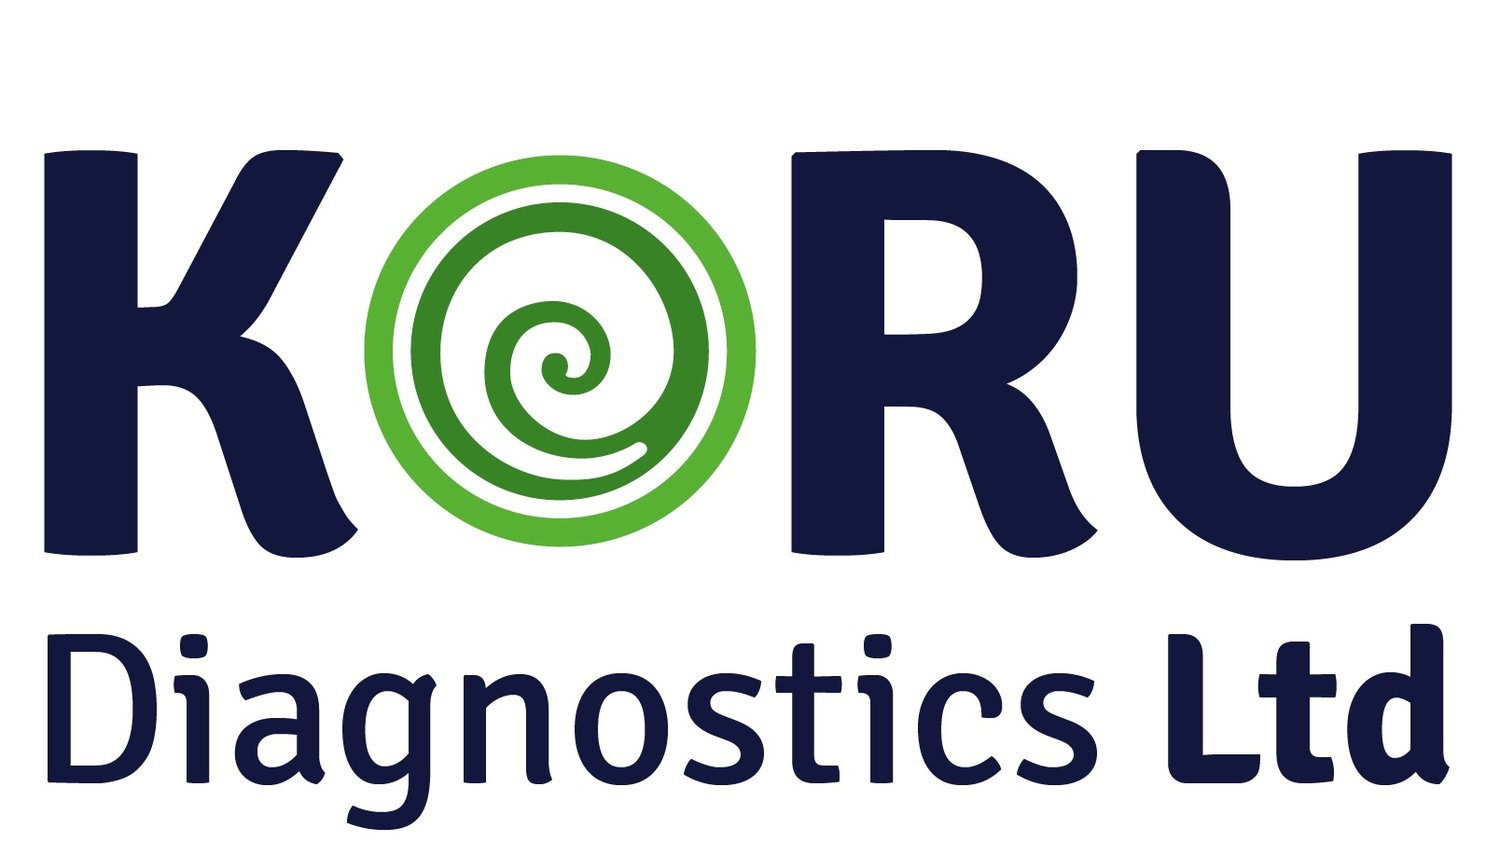 Koru Diagnostics Ltd